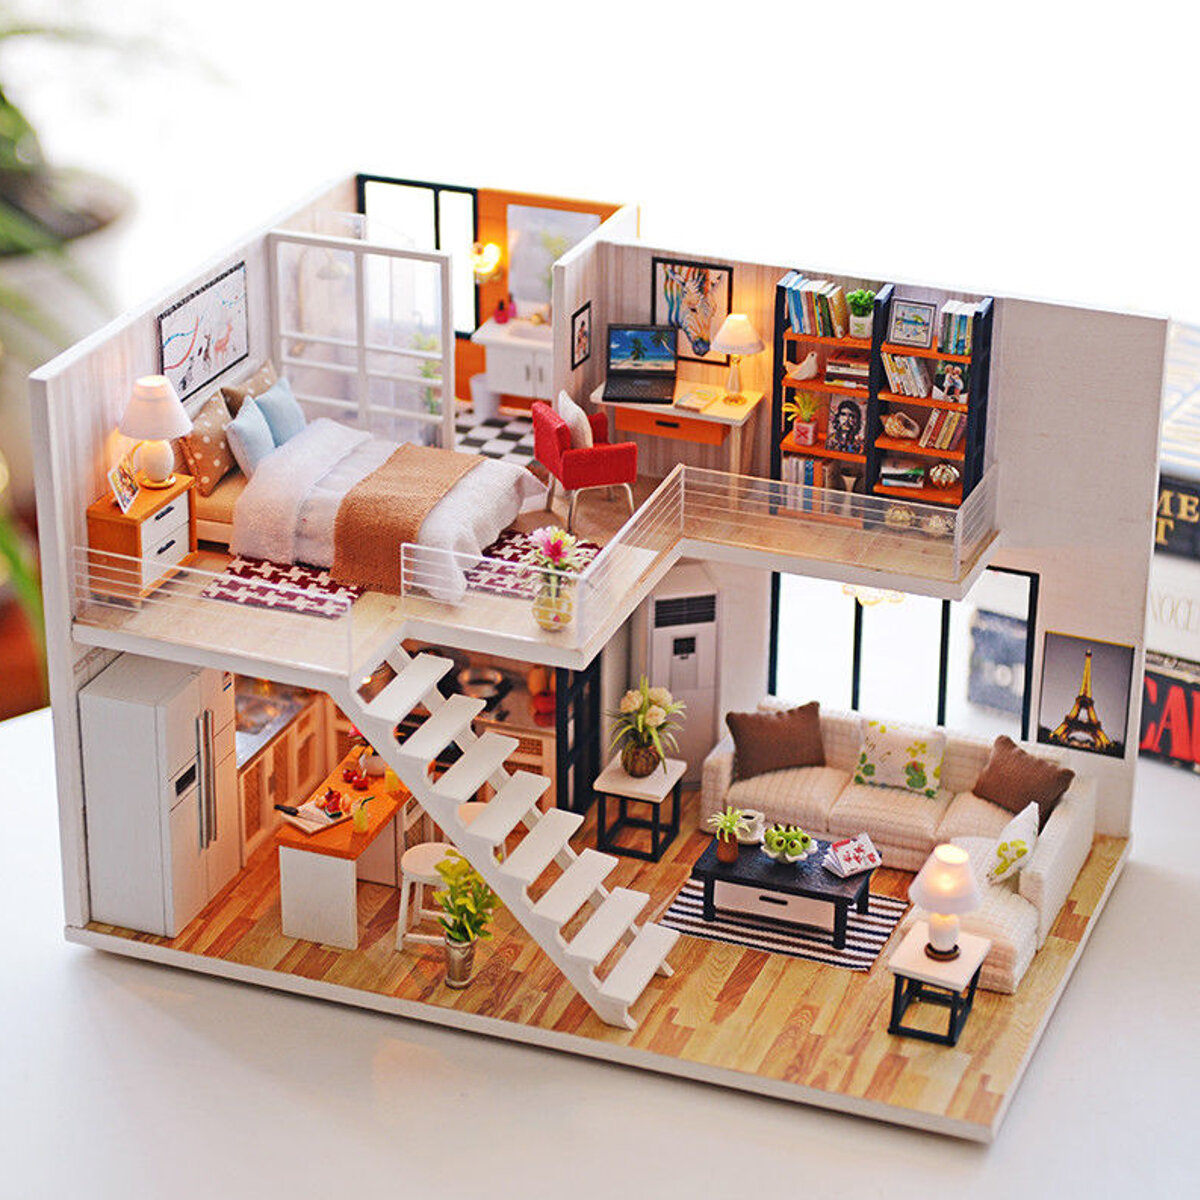 Loft Apartments Miniature Dollhouse Wooden Doll House Furniture Led